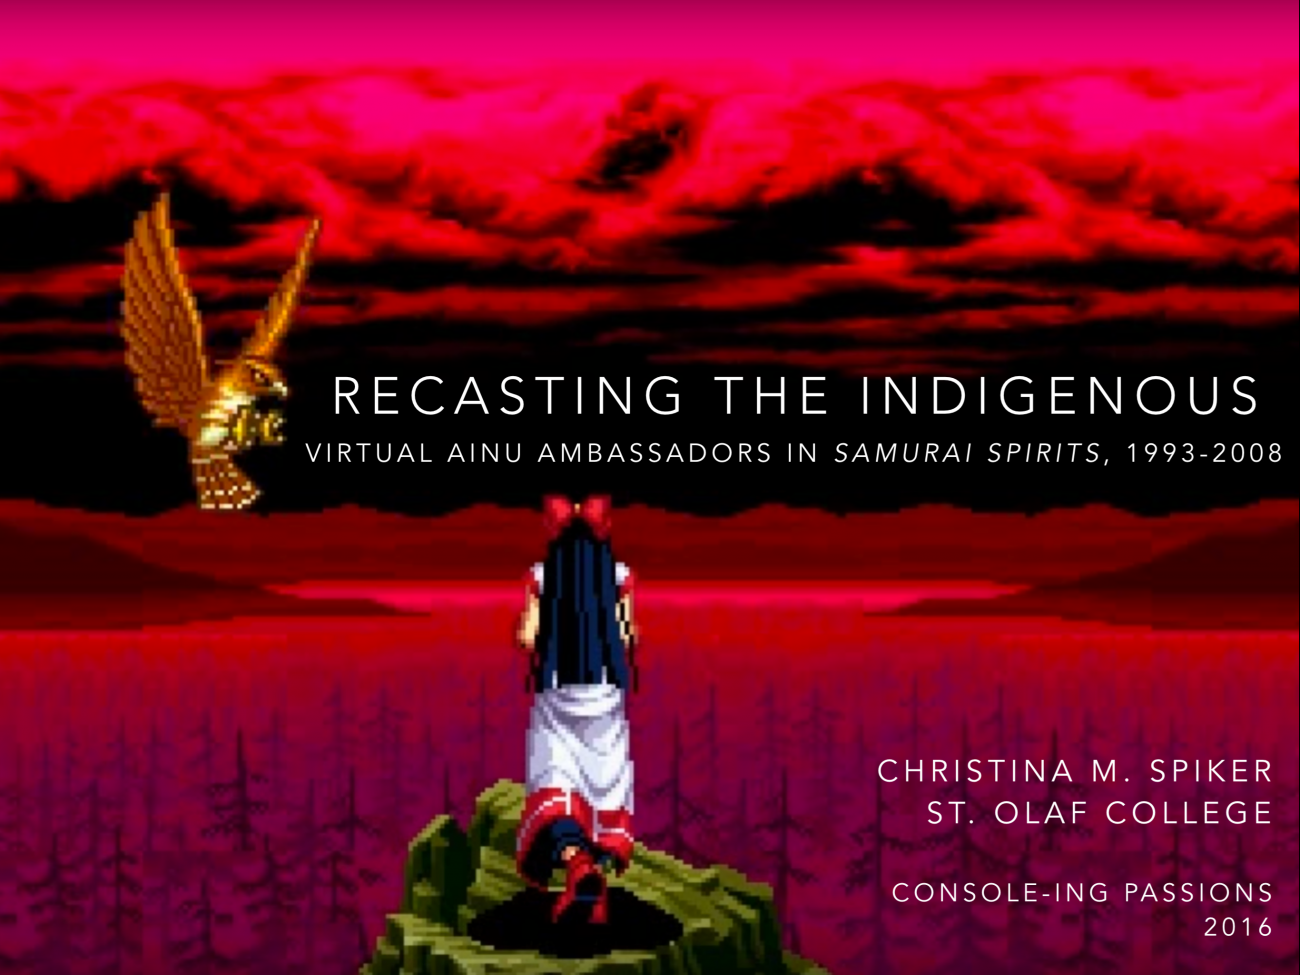 Presentation // Recasting the Indigenous: Virtual Ainu Ambassadors in Japan's <em>Samurai Spirits</em>, 1993-2008